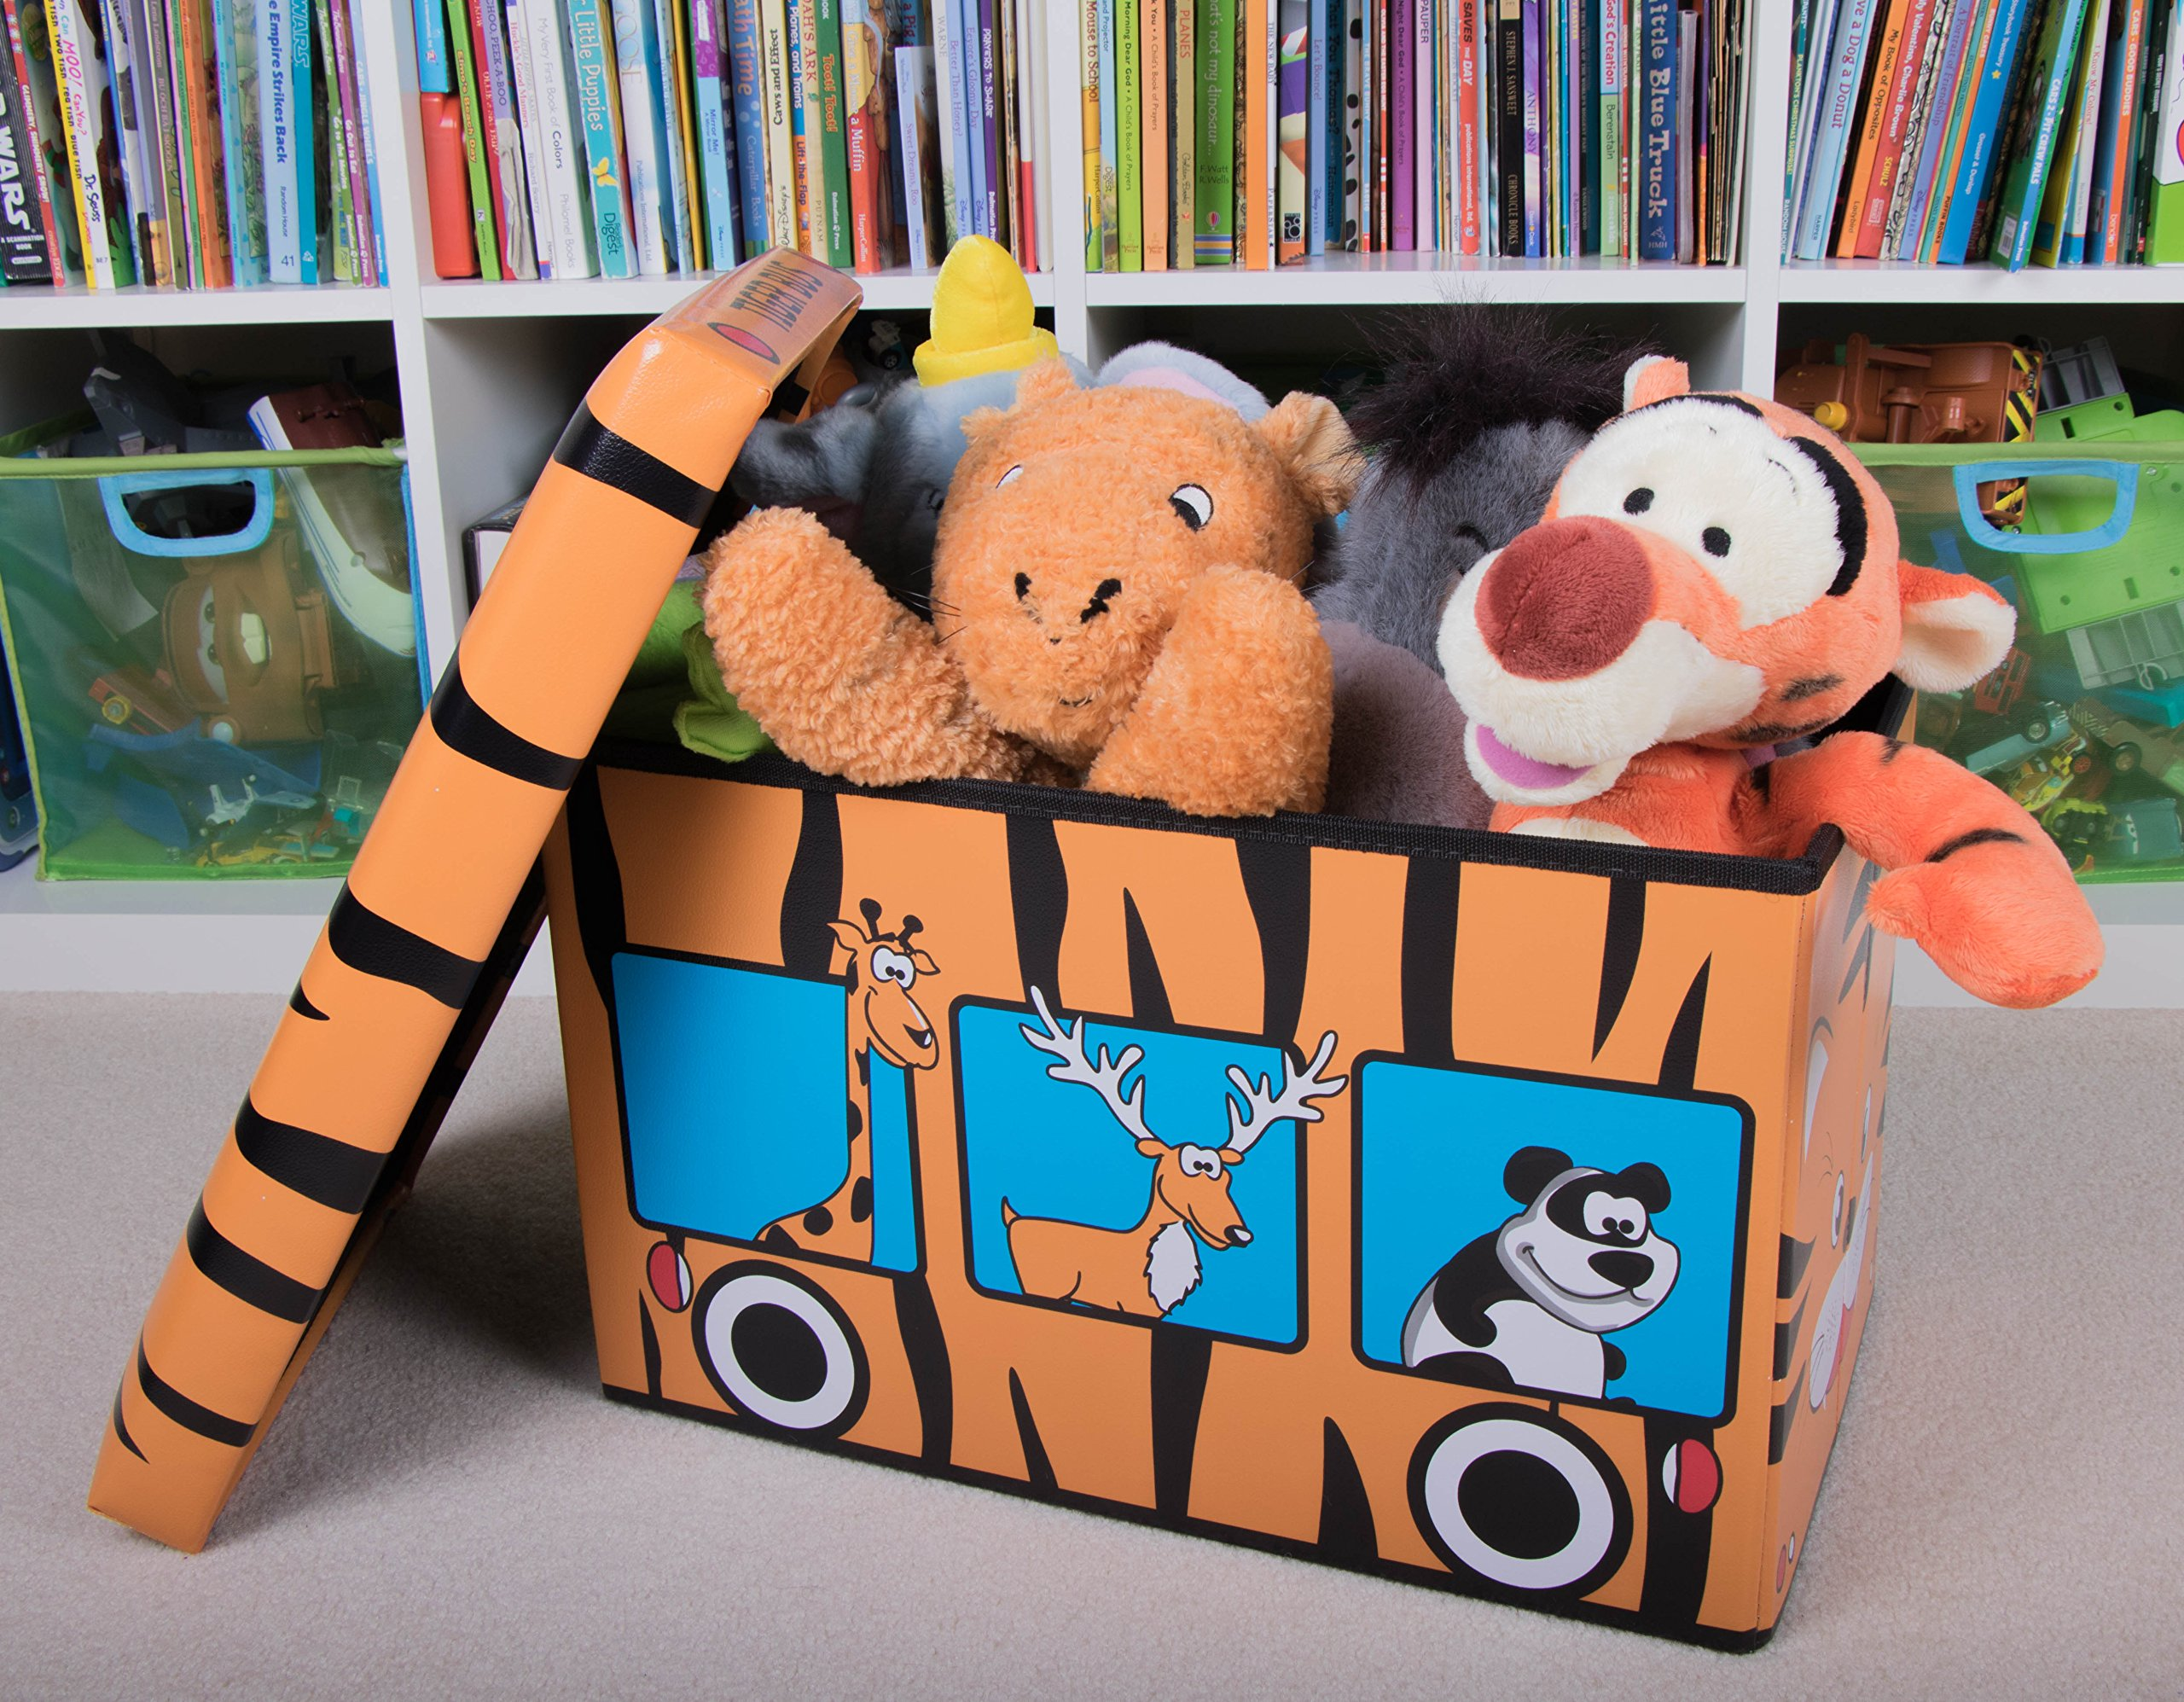 Safari Bus Collapsible Storage Organizer by Clever Creations | Storage Box Folding Storage Ottoman for Your Bedroom | Perfect Size Storage Chest for Books, Shoes & Games by Clever Creations (Image #5)